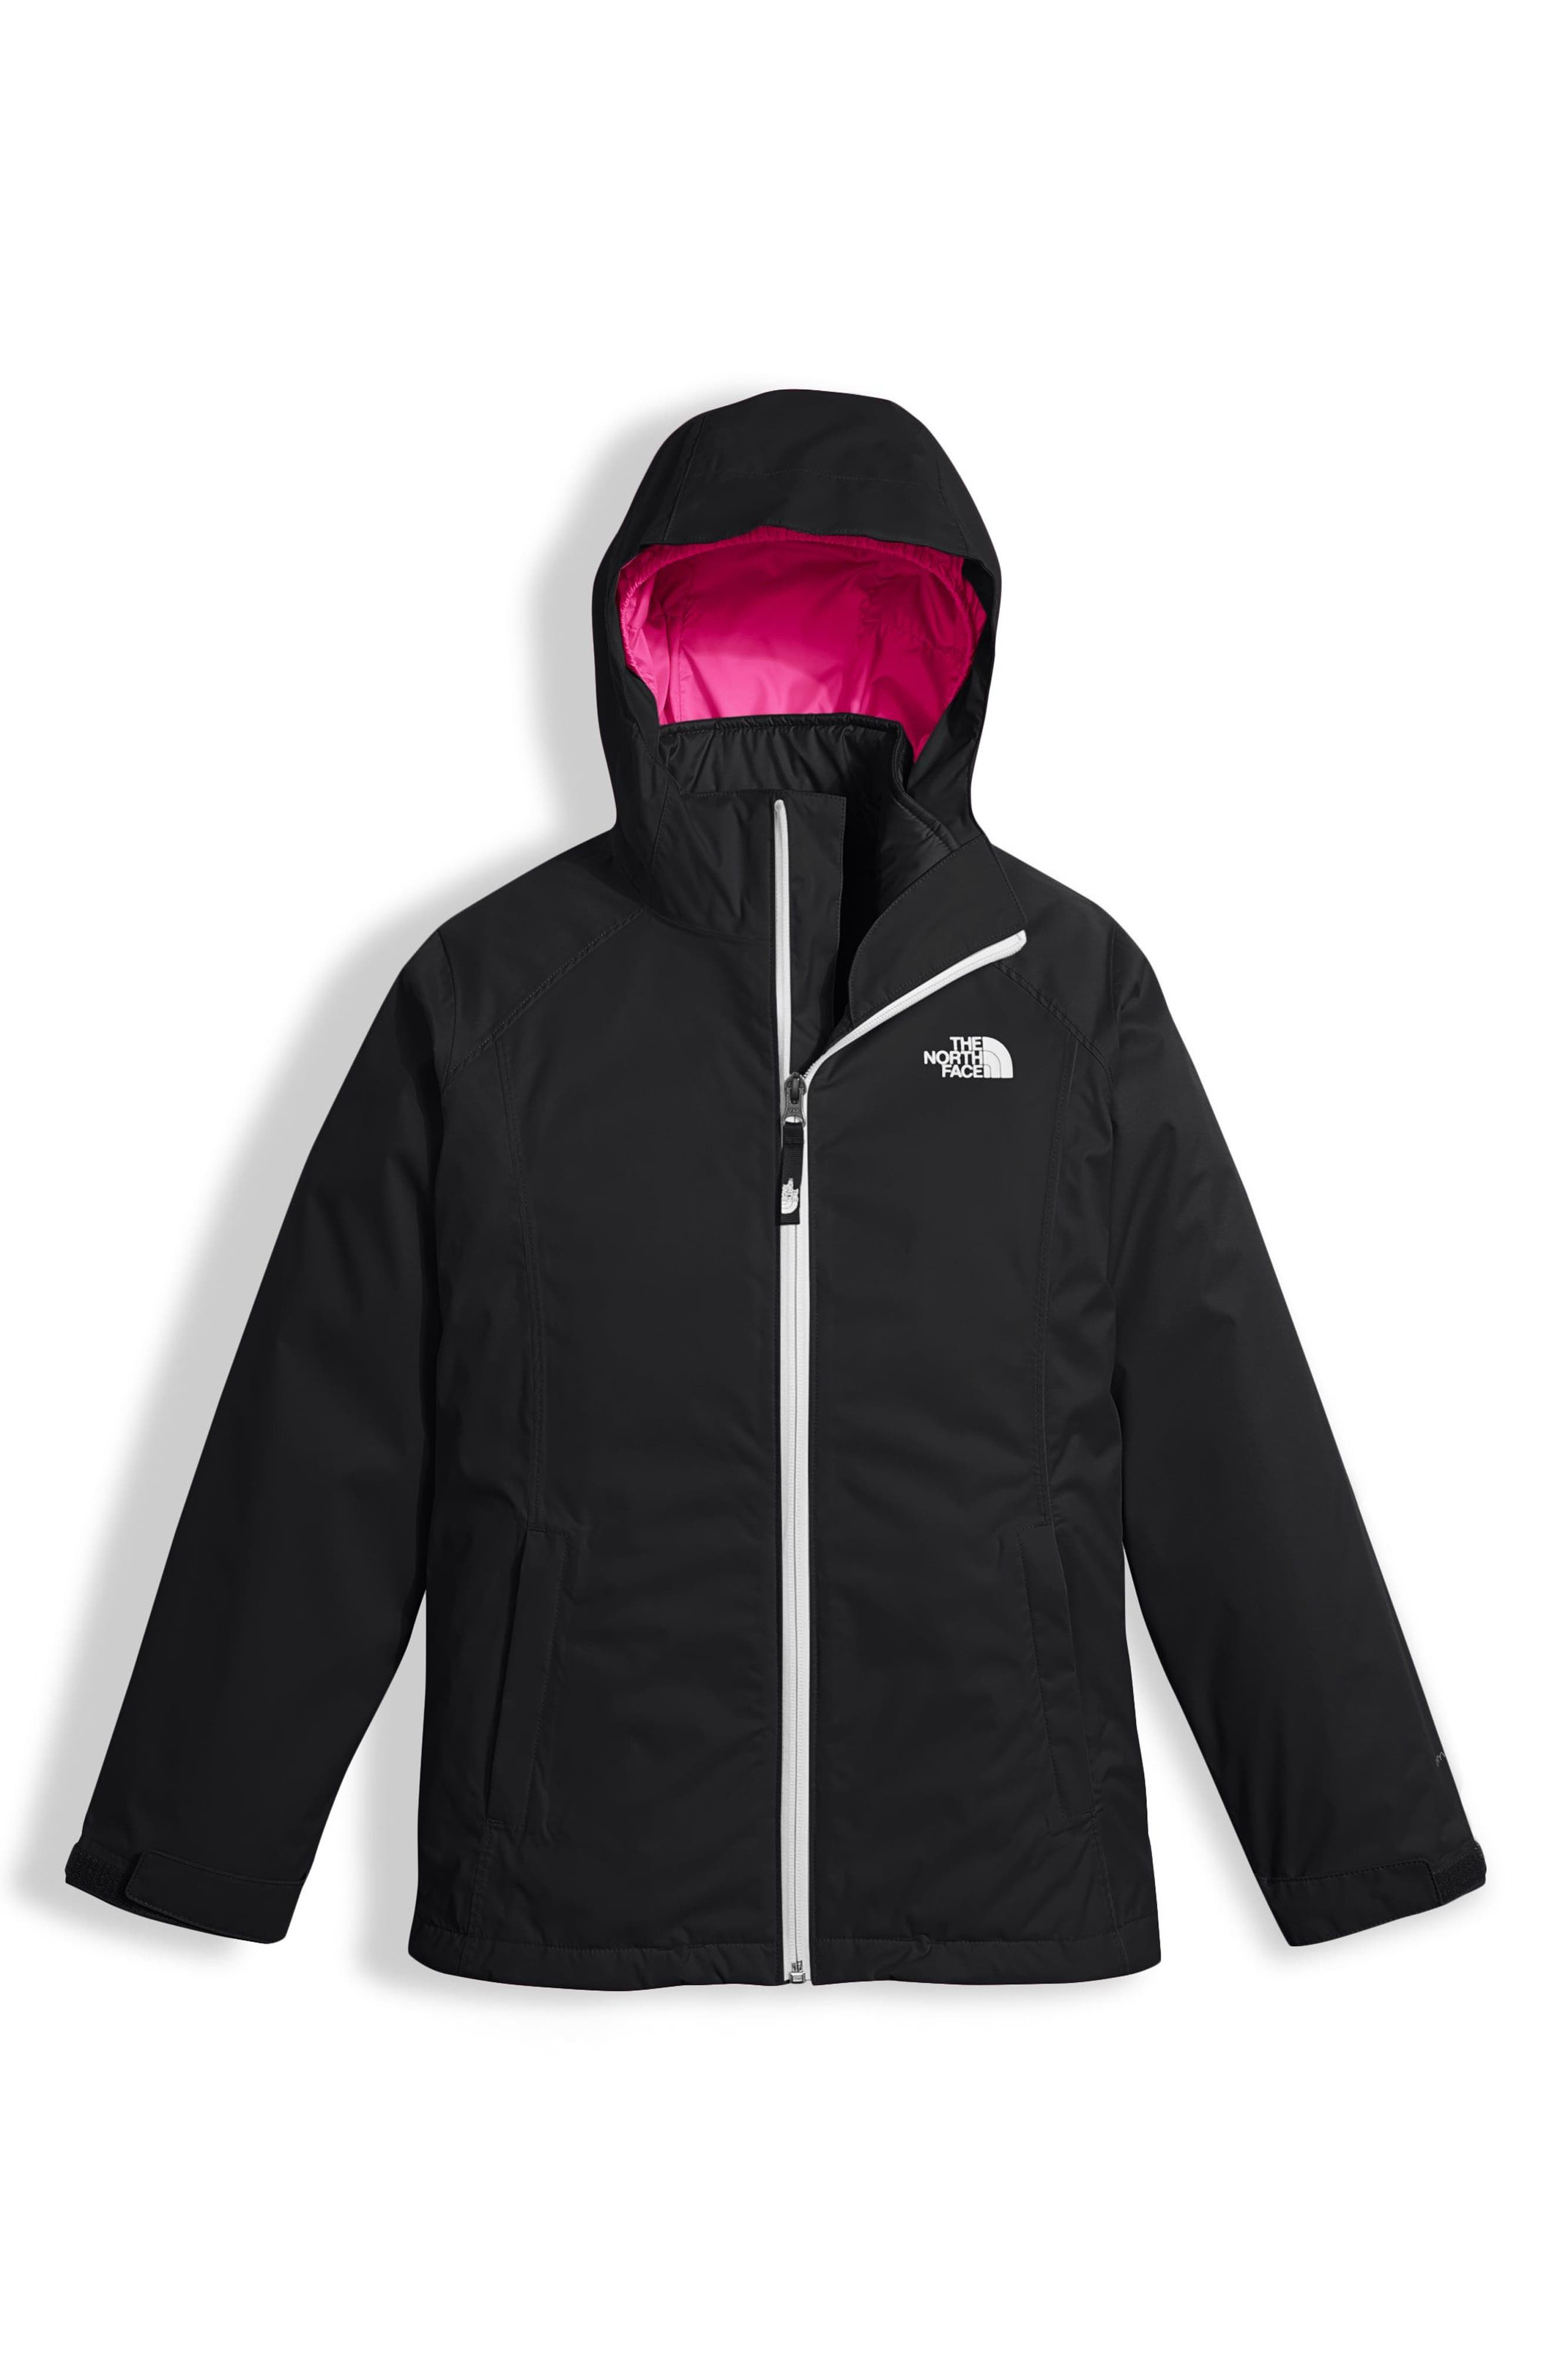 East Ridge Triclimate<sup>®</sup> Waterproof 3-in-1 Jacket,                             Main thumbnail 1, color,